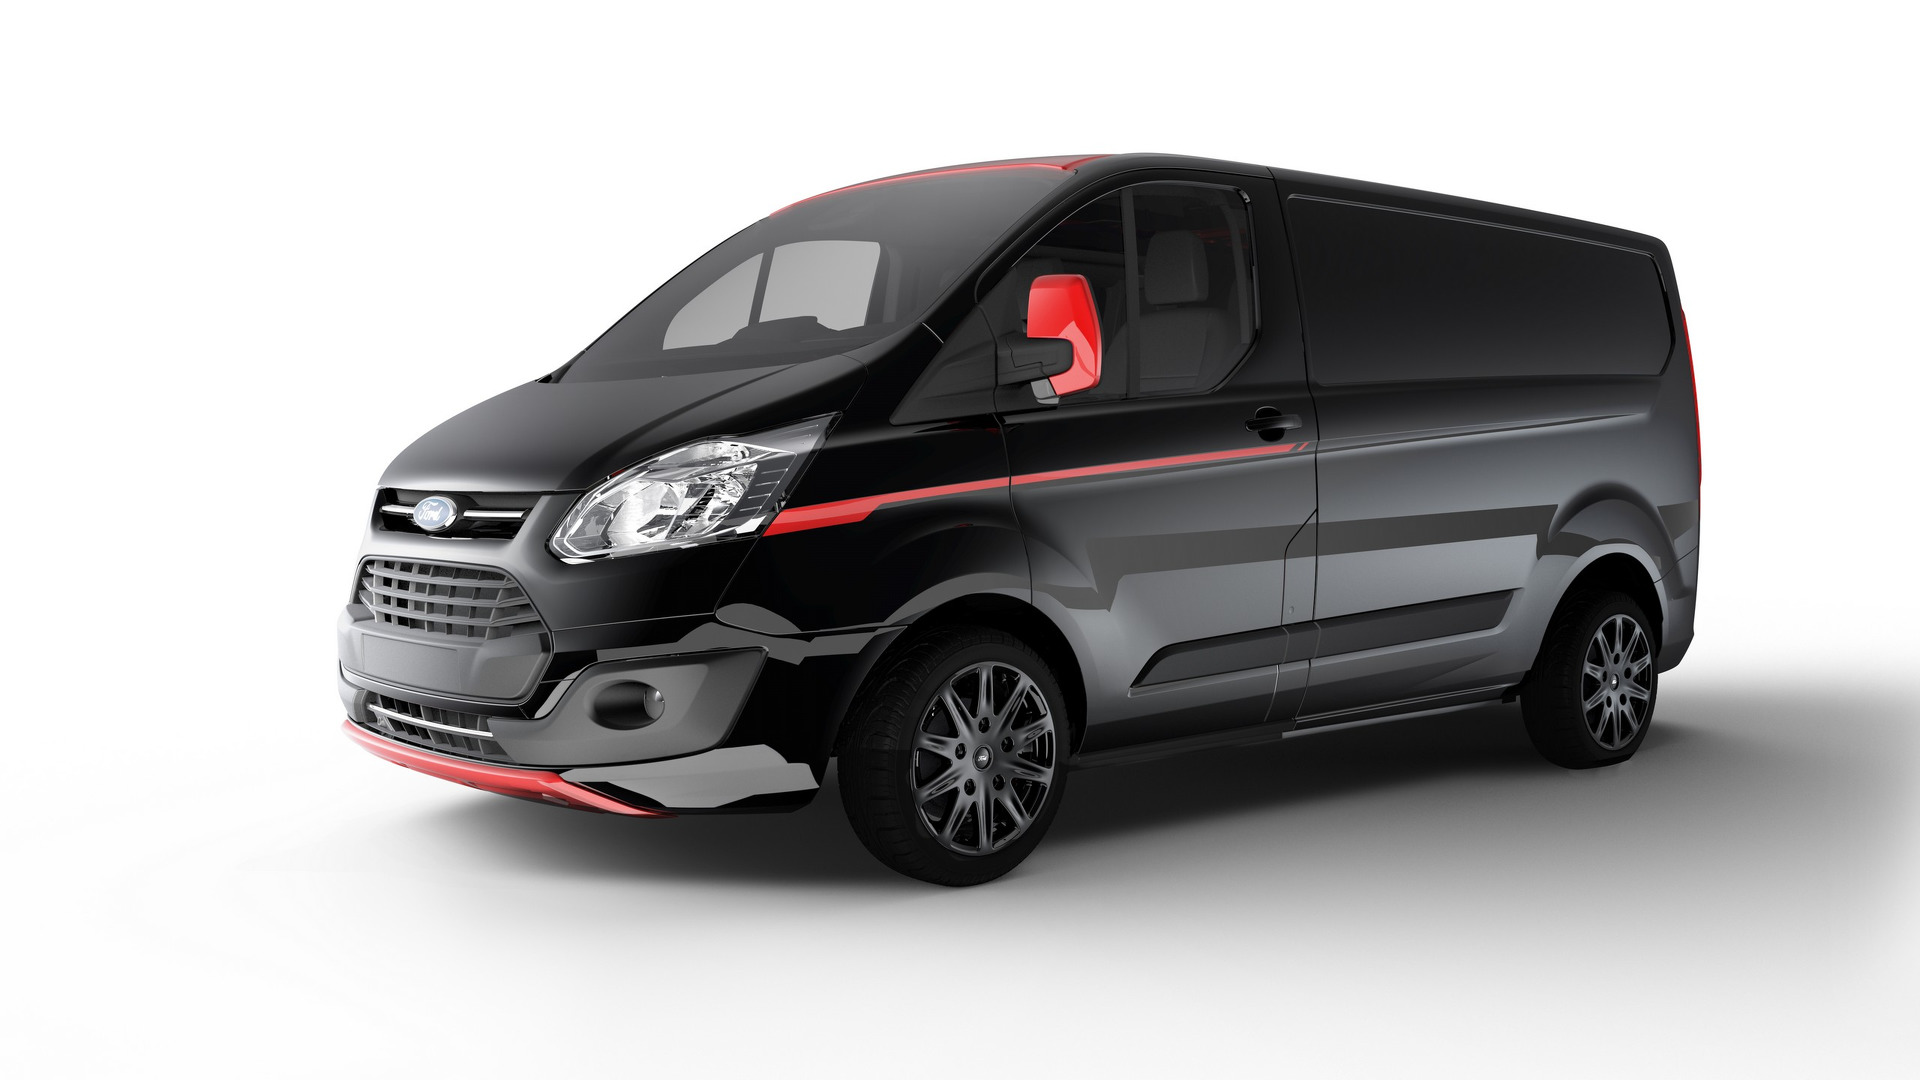 Fords vans in europe just got a lot more fun